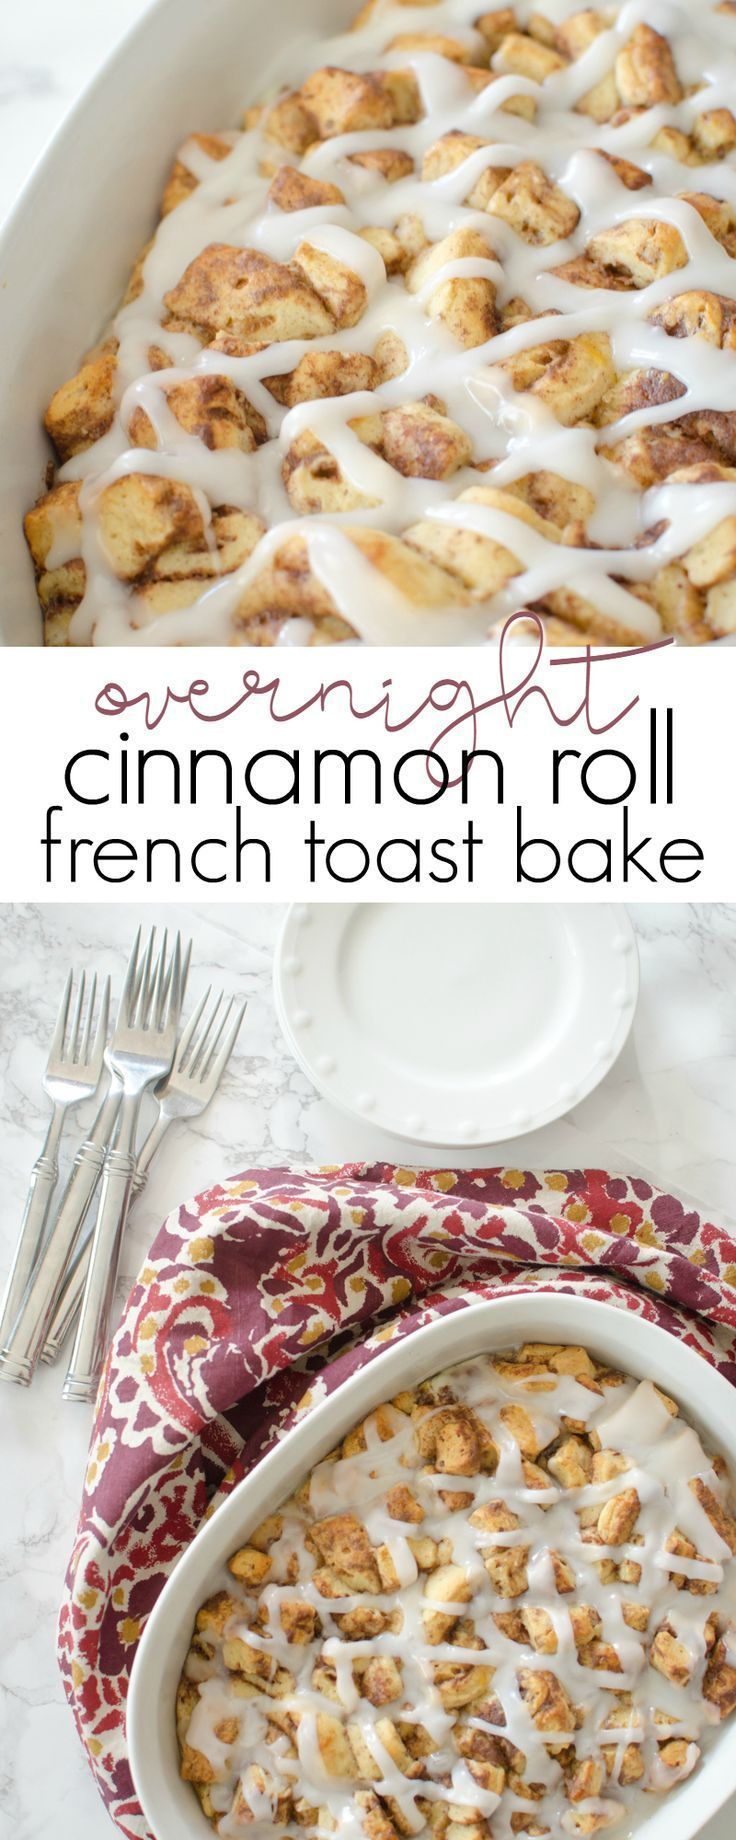 Start a new holiday tradition with Overnight Cinnamon Roll French Toast Bake for breakfast!